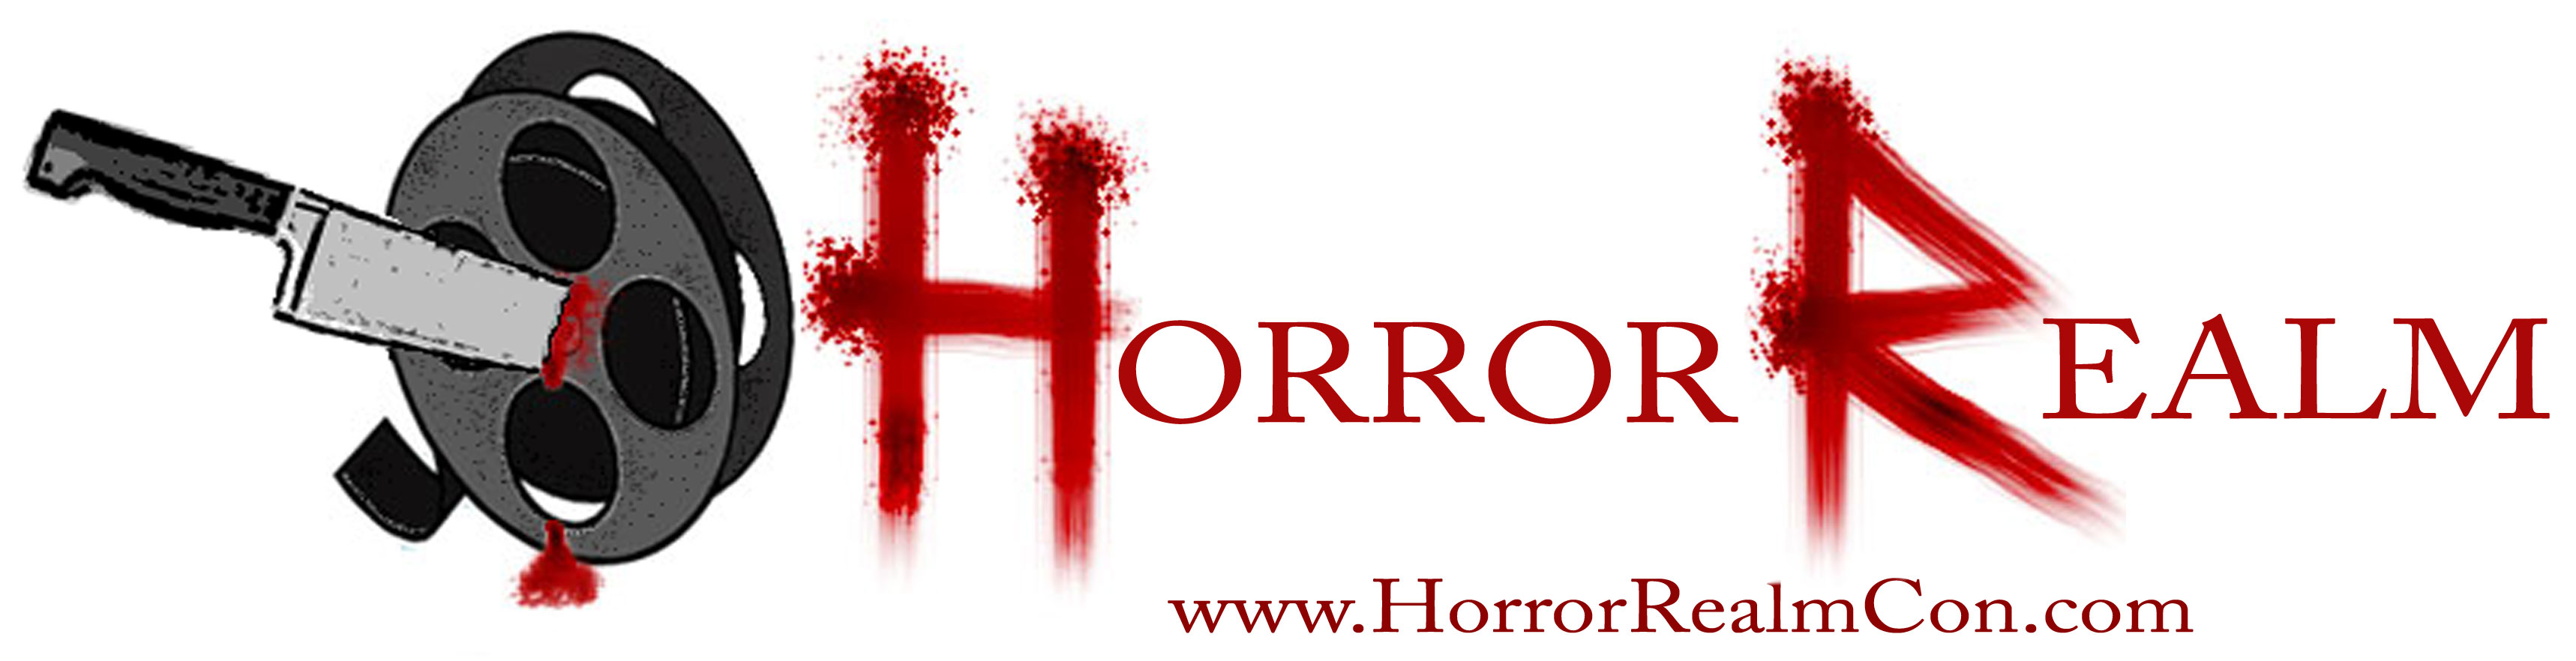 Tickets for Horror Realm Spring Break Massacre in Pittsburgh from ShowClix